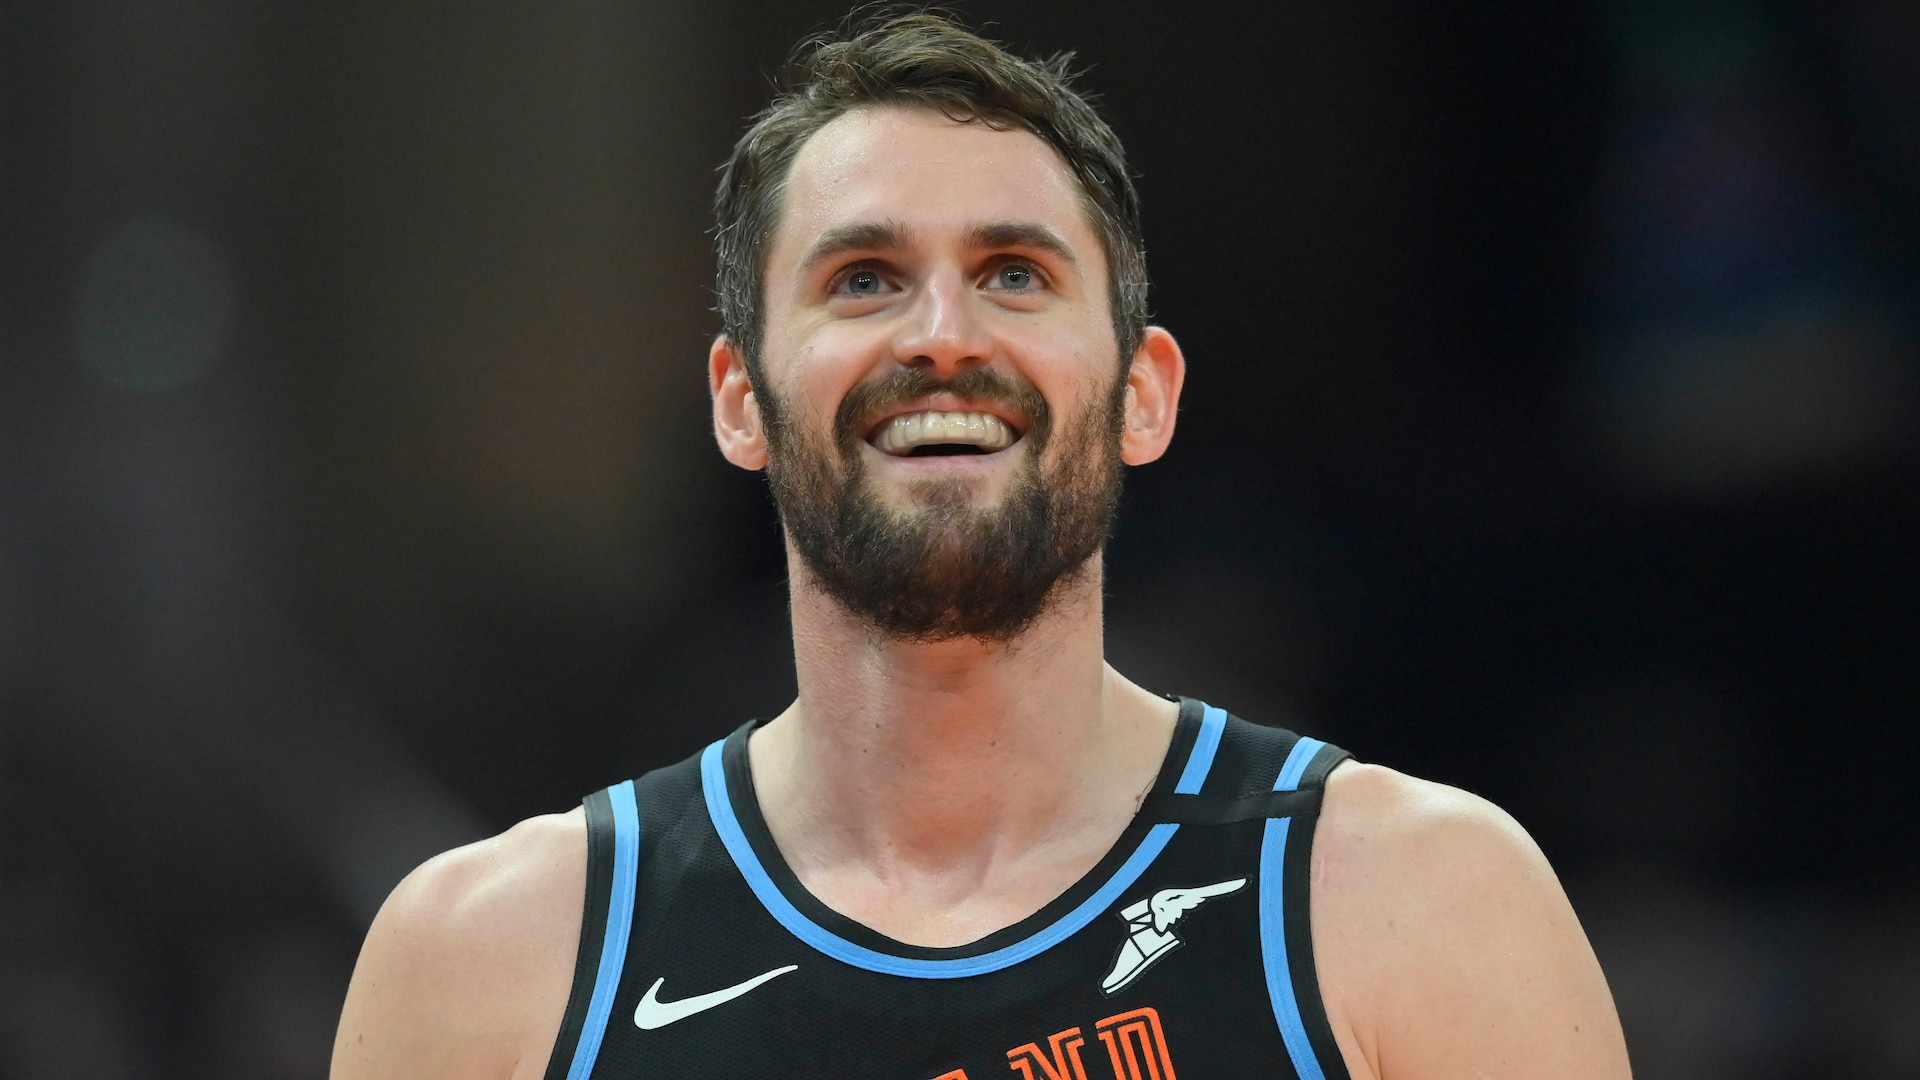 Kevin Love commits $500,000 to UCLA's mental health effort